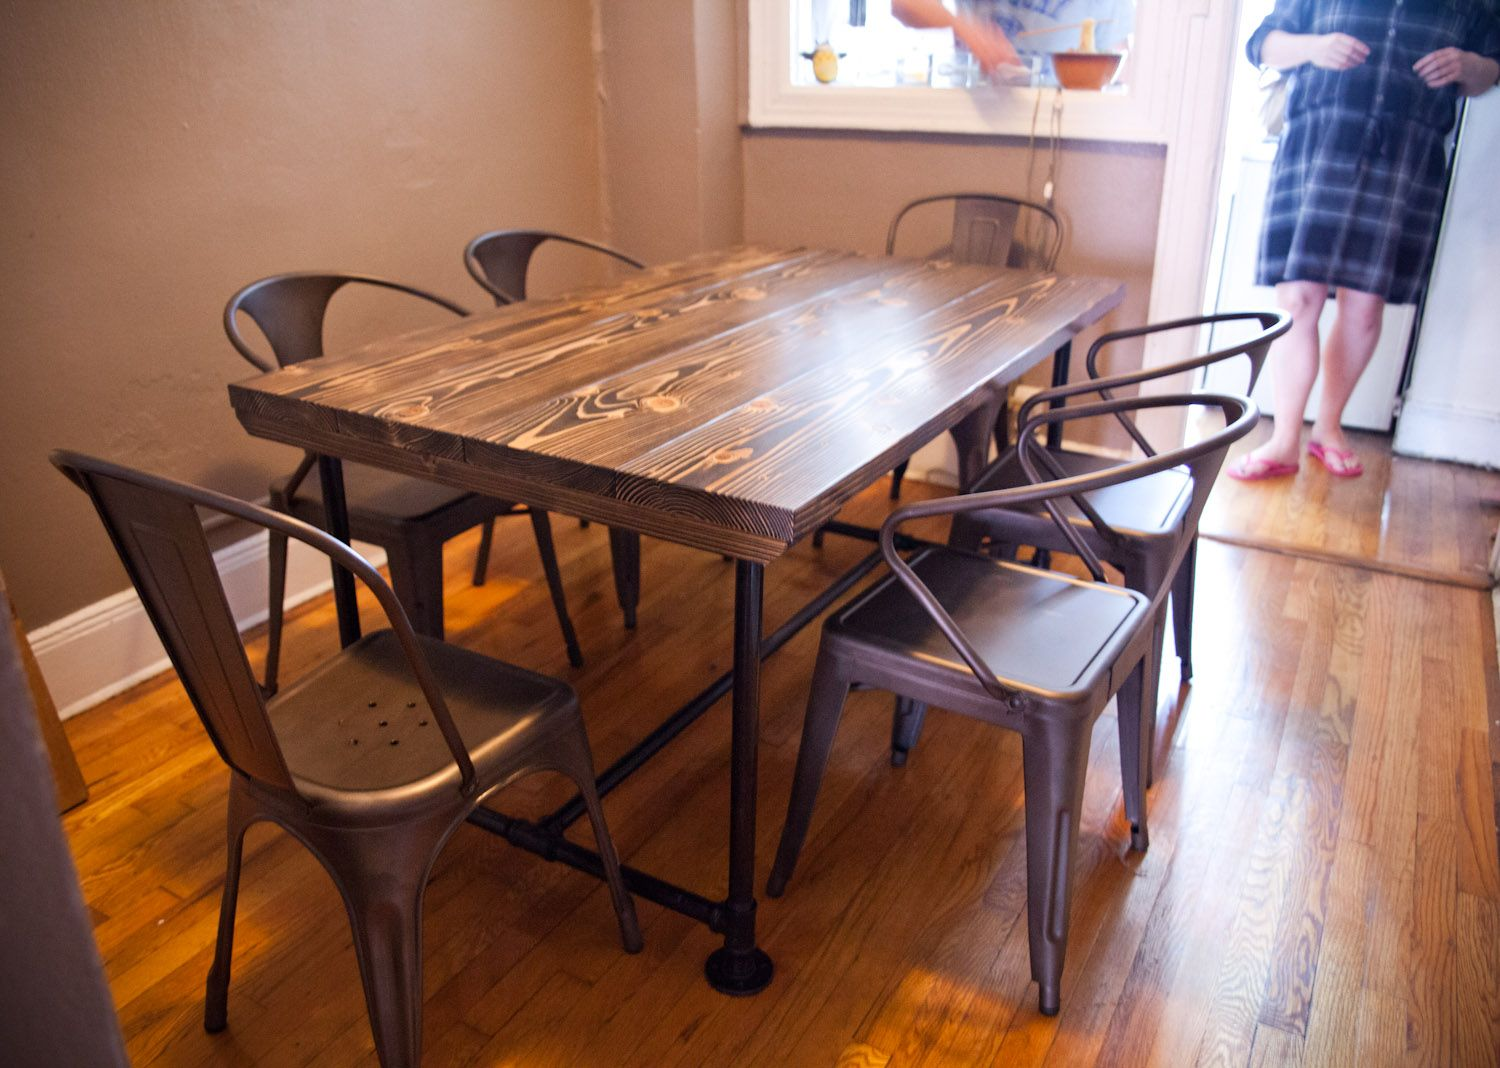 black walnut kitchen table quartz countertops industrial style with legs the